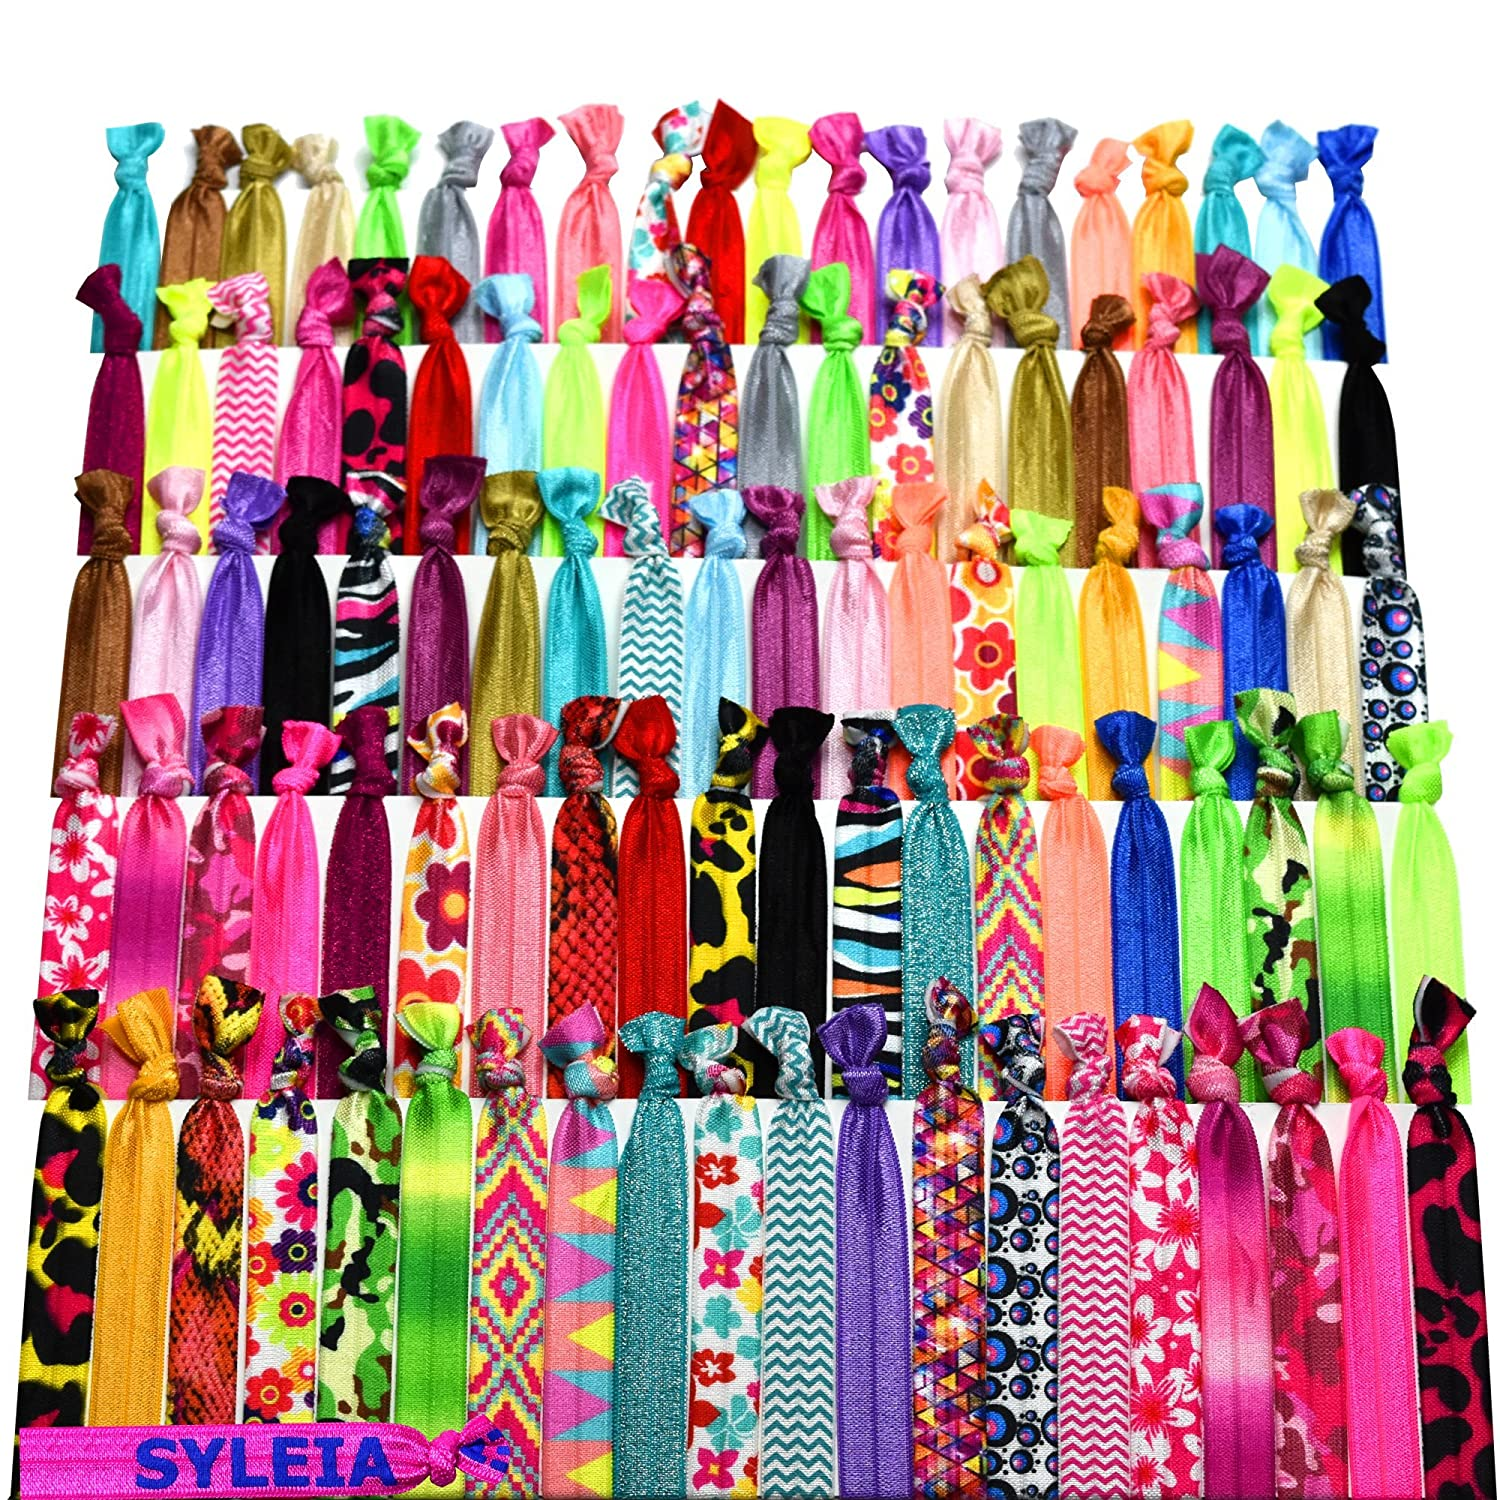 Syleia 100 Hair Ties - Printed Patterns and Solid Colors - Plus One Bonus Hair Tie - Elastic Ponytail Holders No Crease Hand Knotted Fold Over Assorted 100 Pack